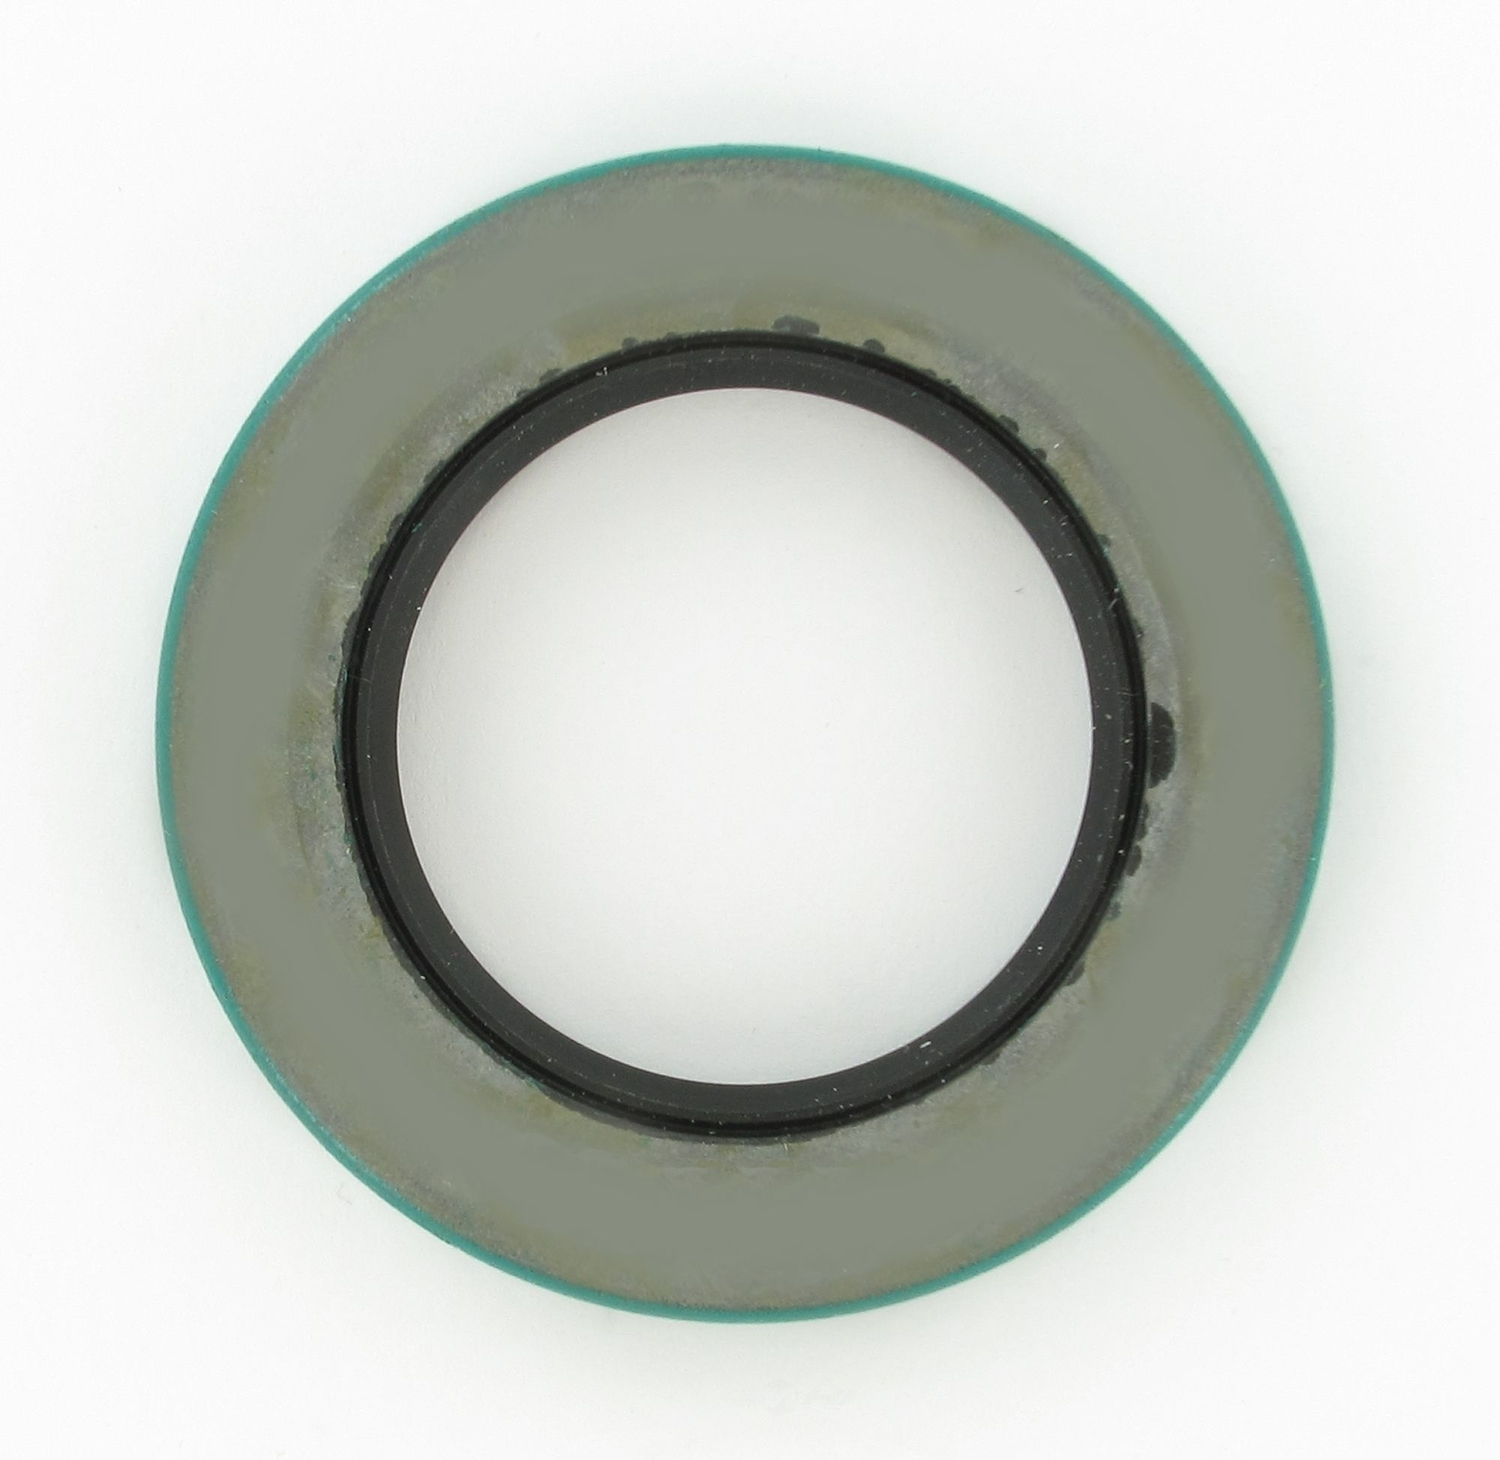 SKF (CHICAGO RAWHIDE) - Rear Seal-MT - SKF 15005